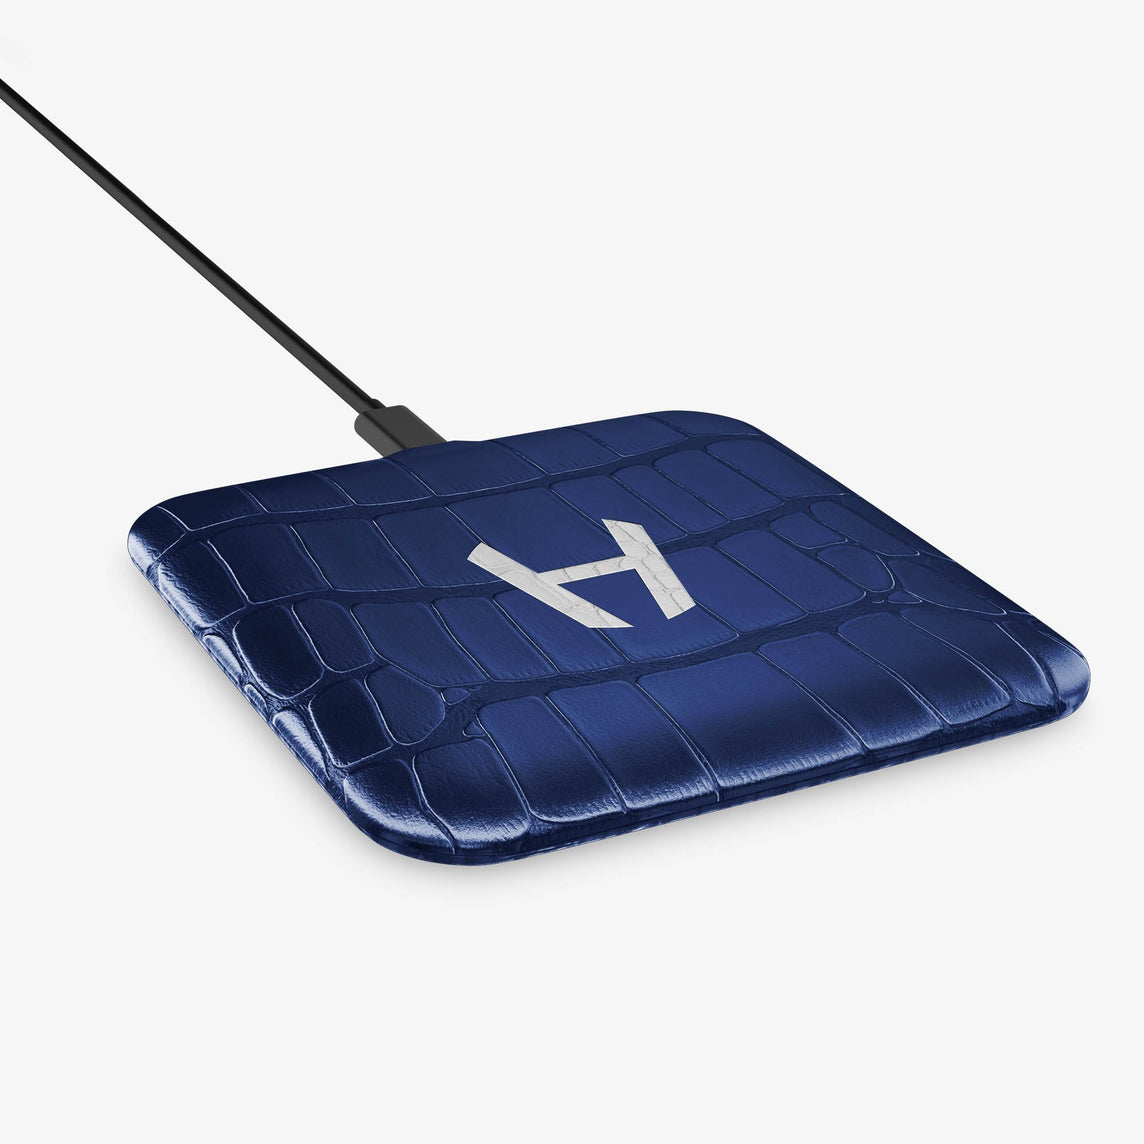 Alligator Hadoro Wireless Charging Pad | Navy Blue - Stainless Steel without-personalization